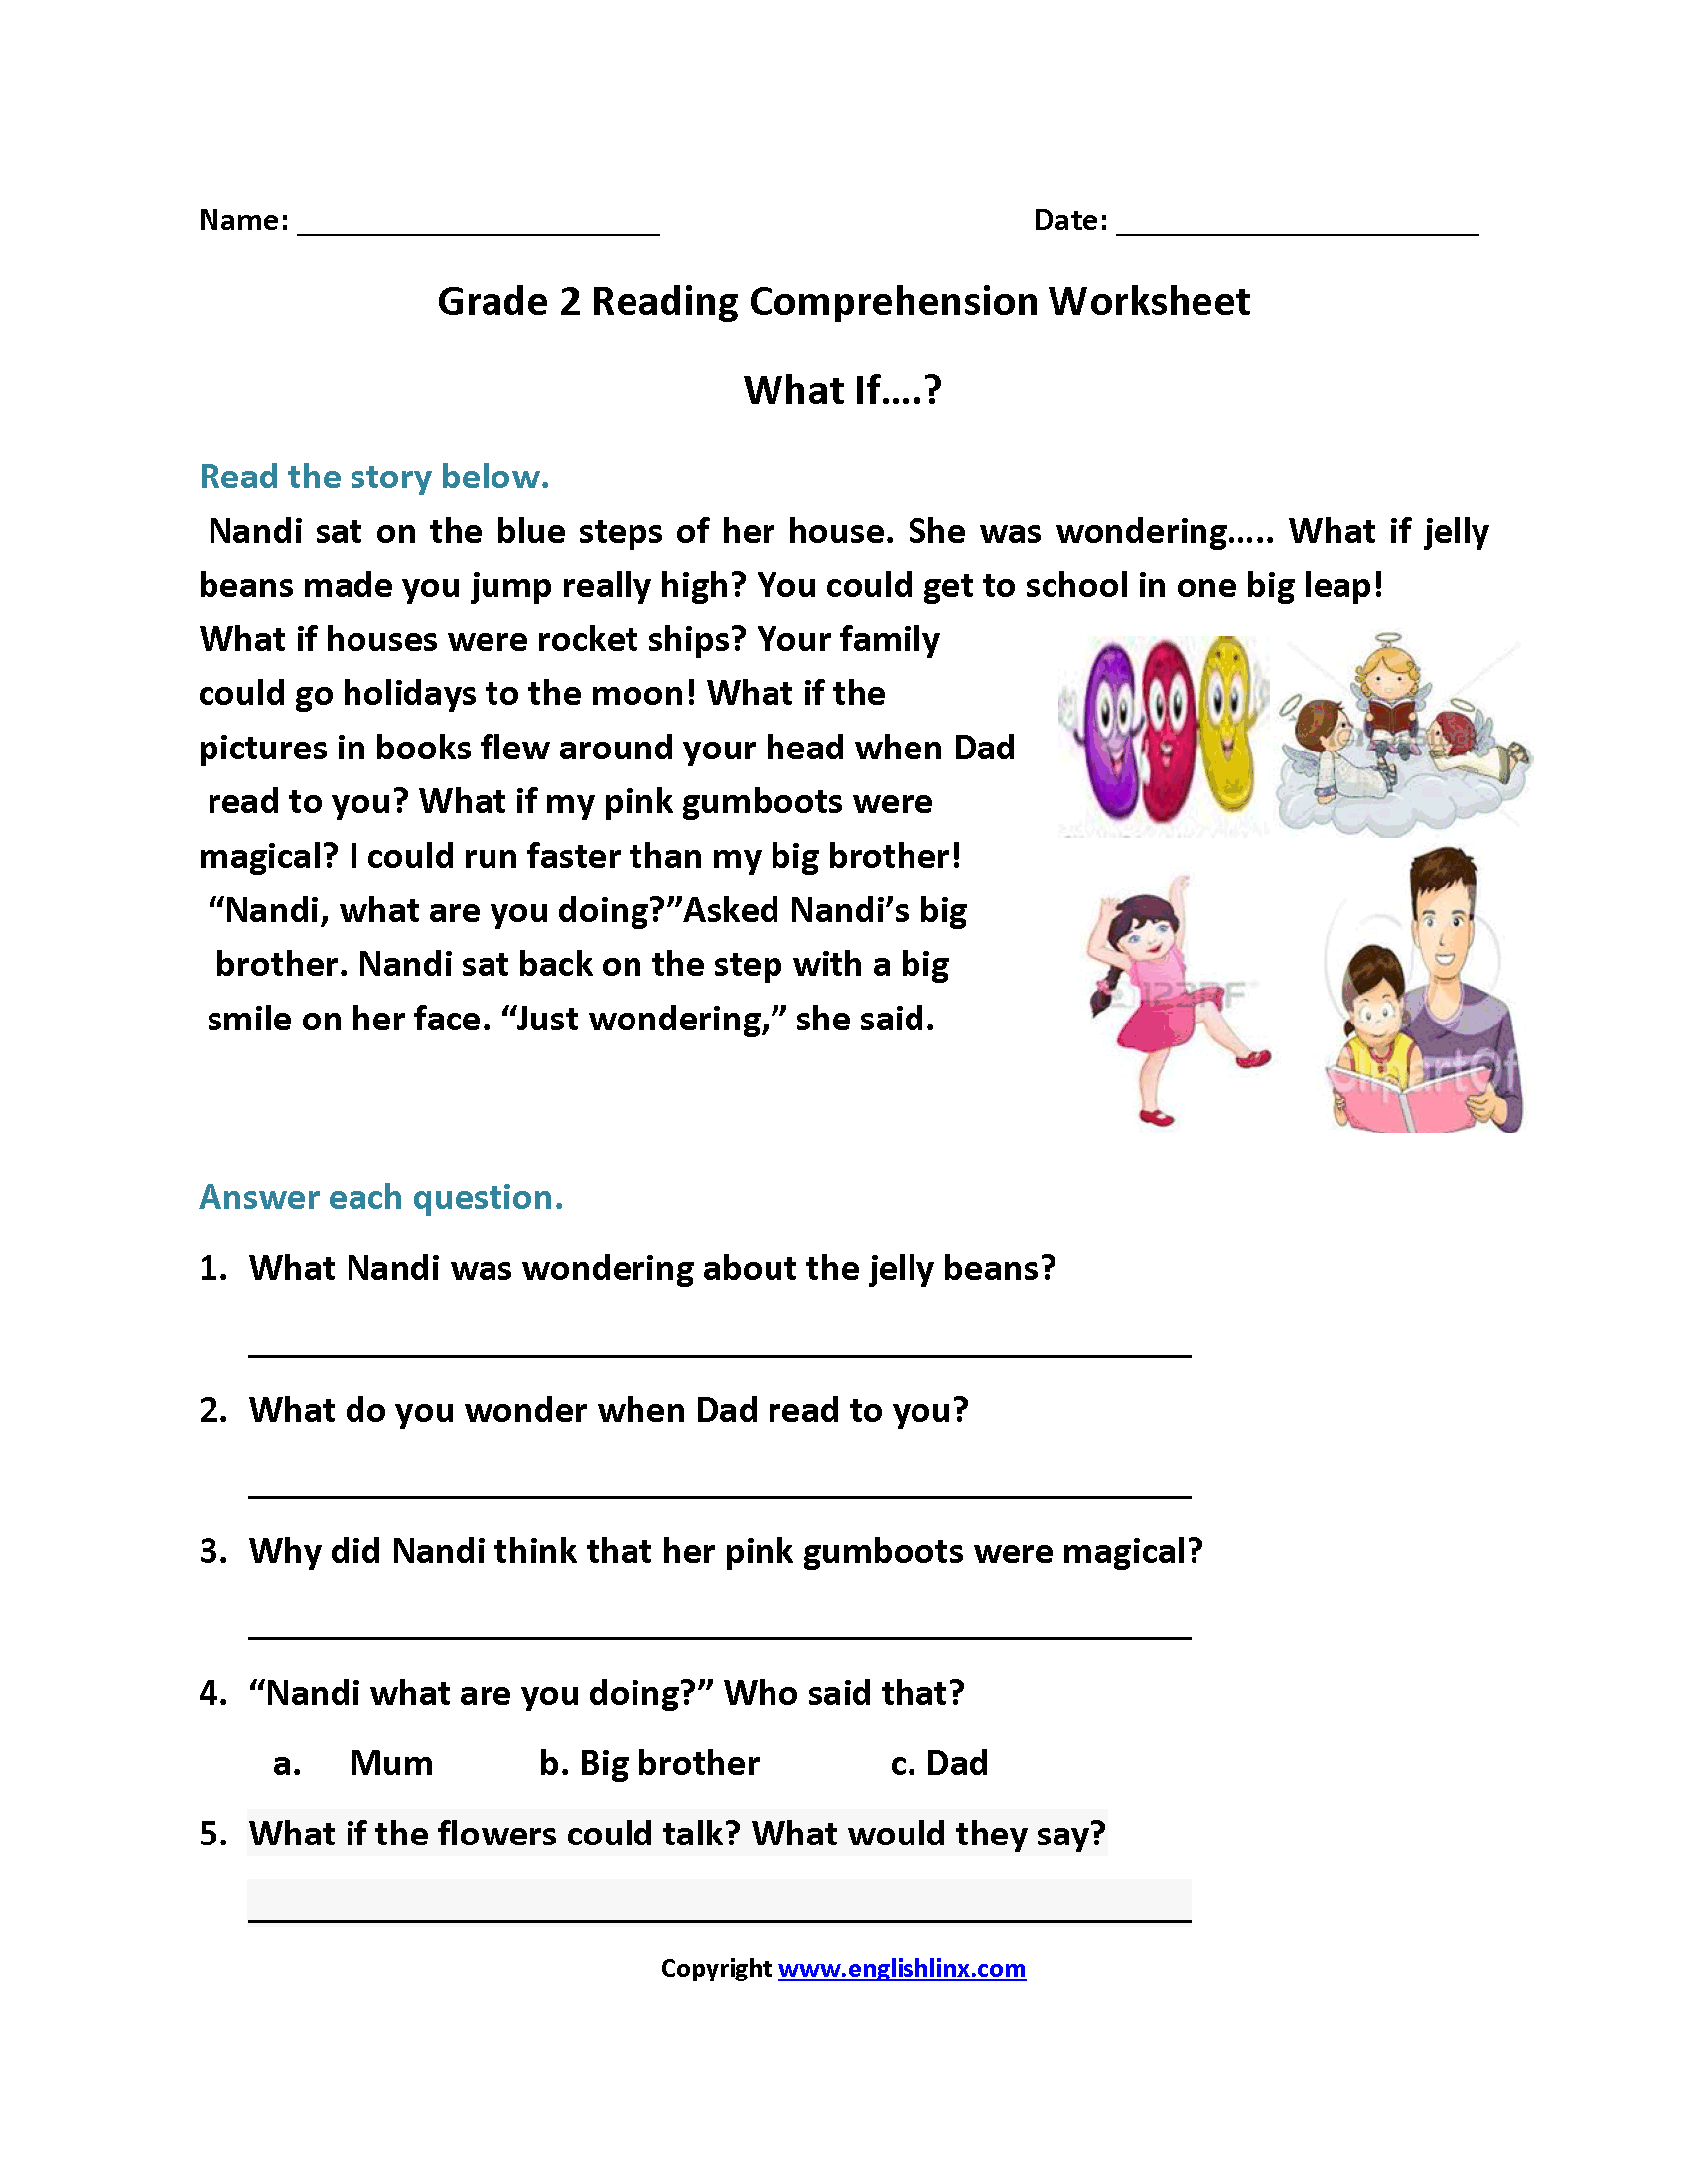 What If Second Grade Reading Worksheets   2nd grade reading worksheets [ 2200 x 1700 Pixel ]